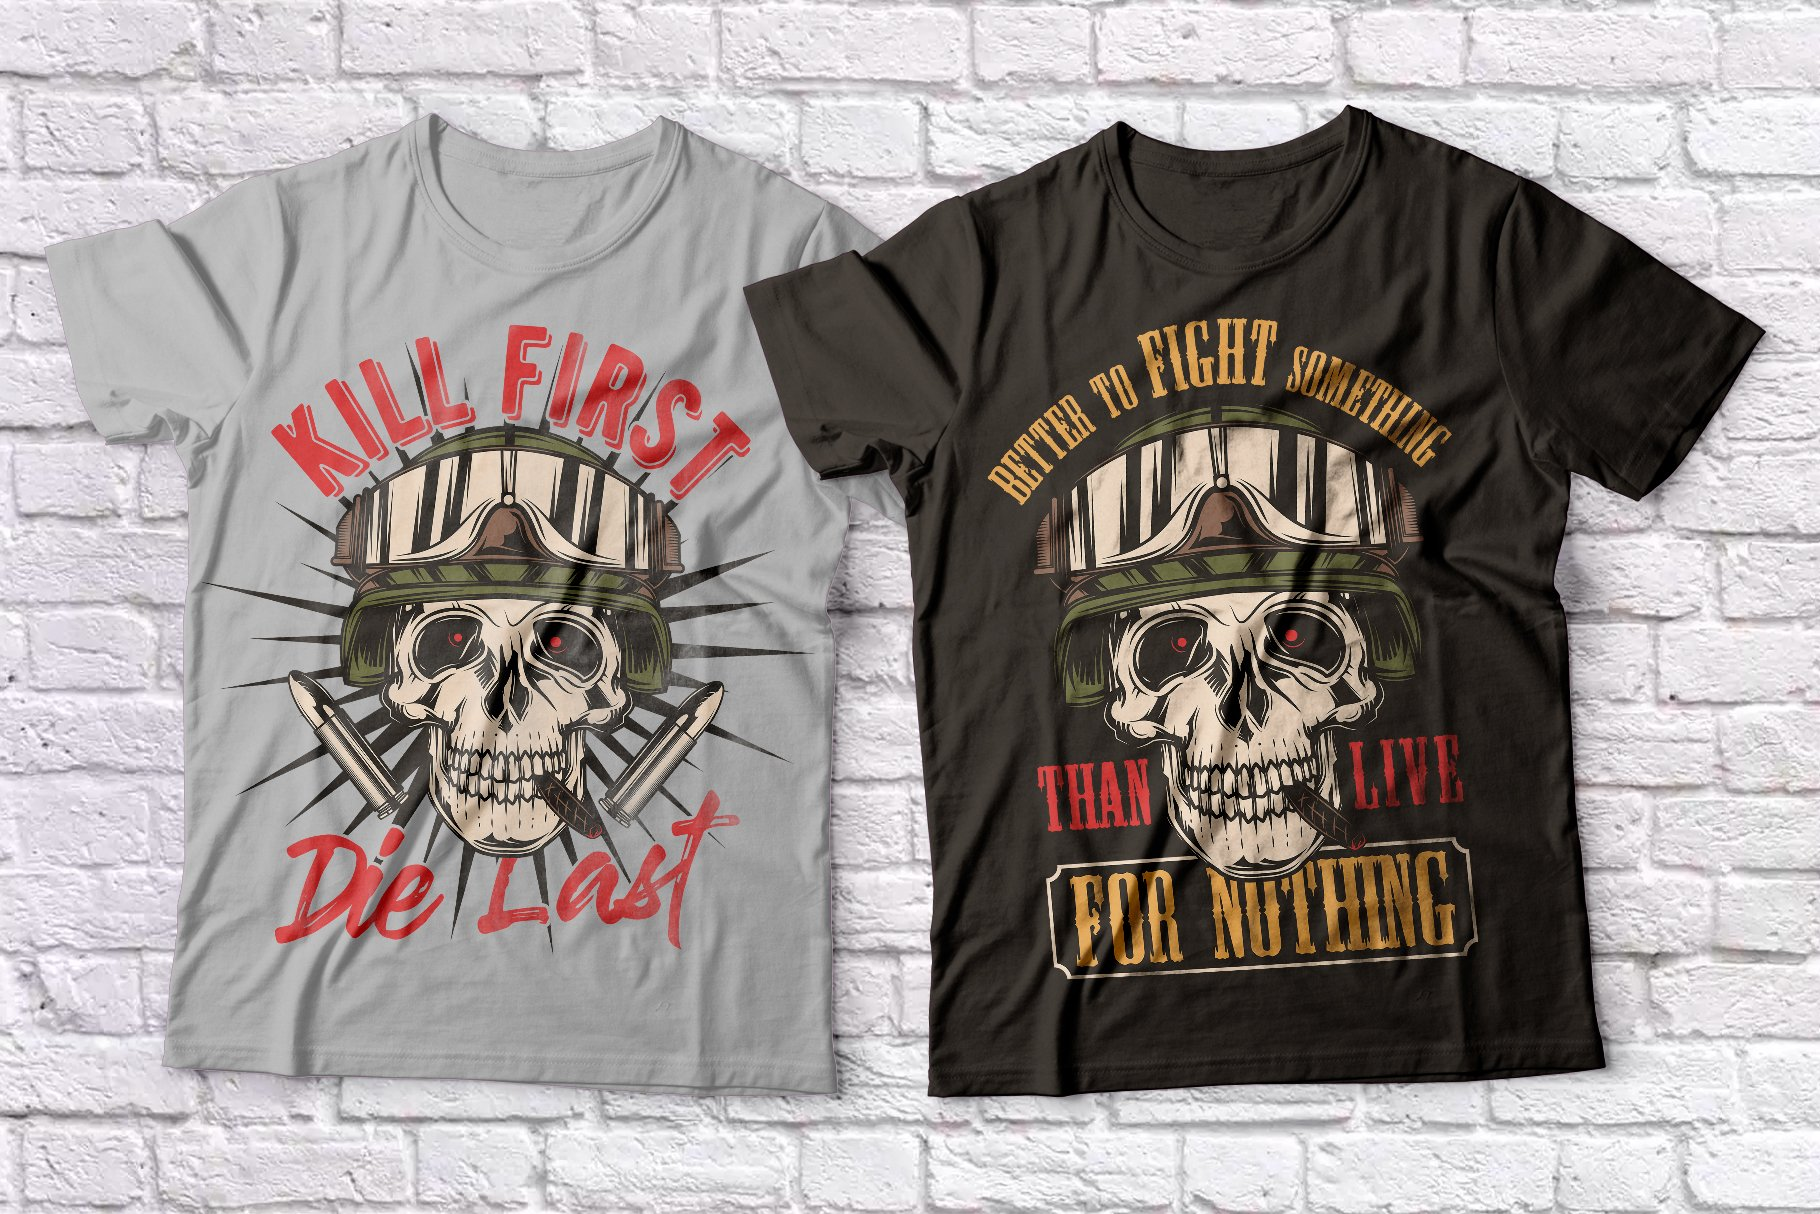 Warriors and bikers T-shirts set example image 4